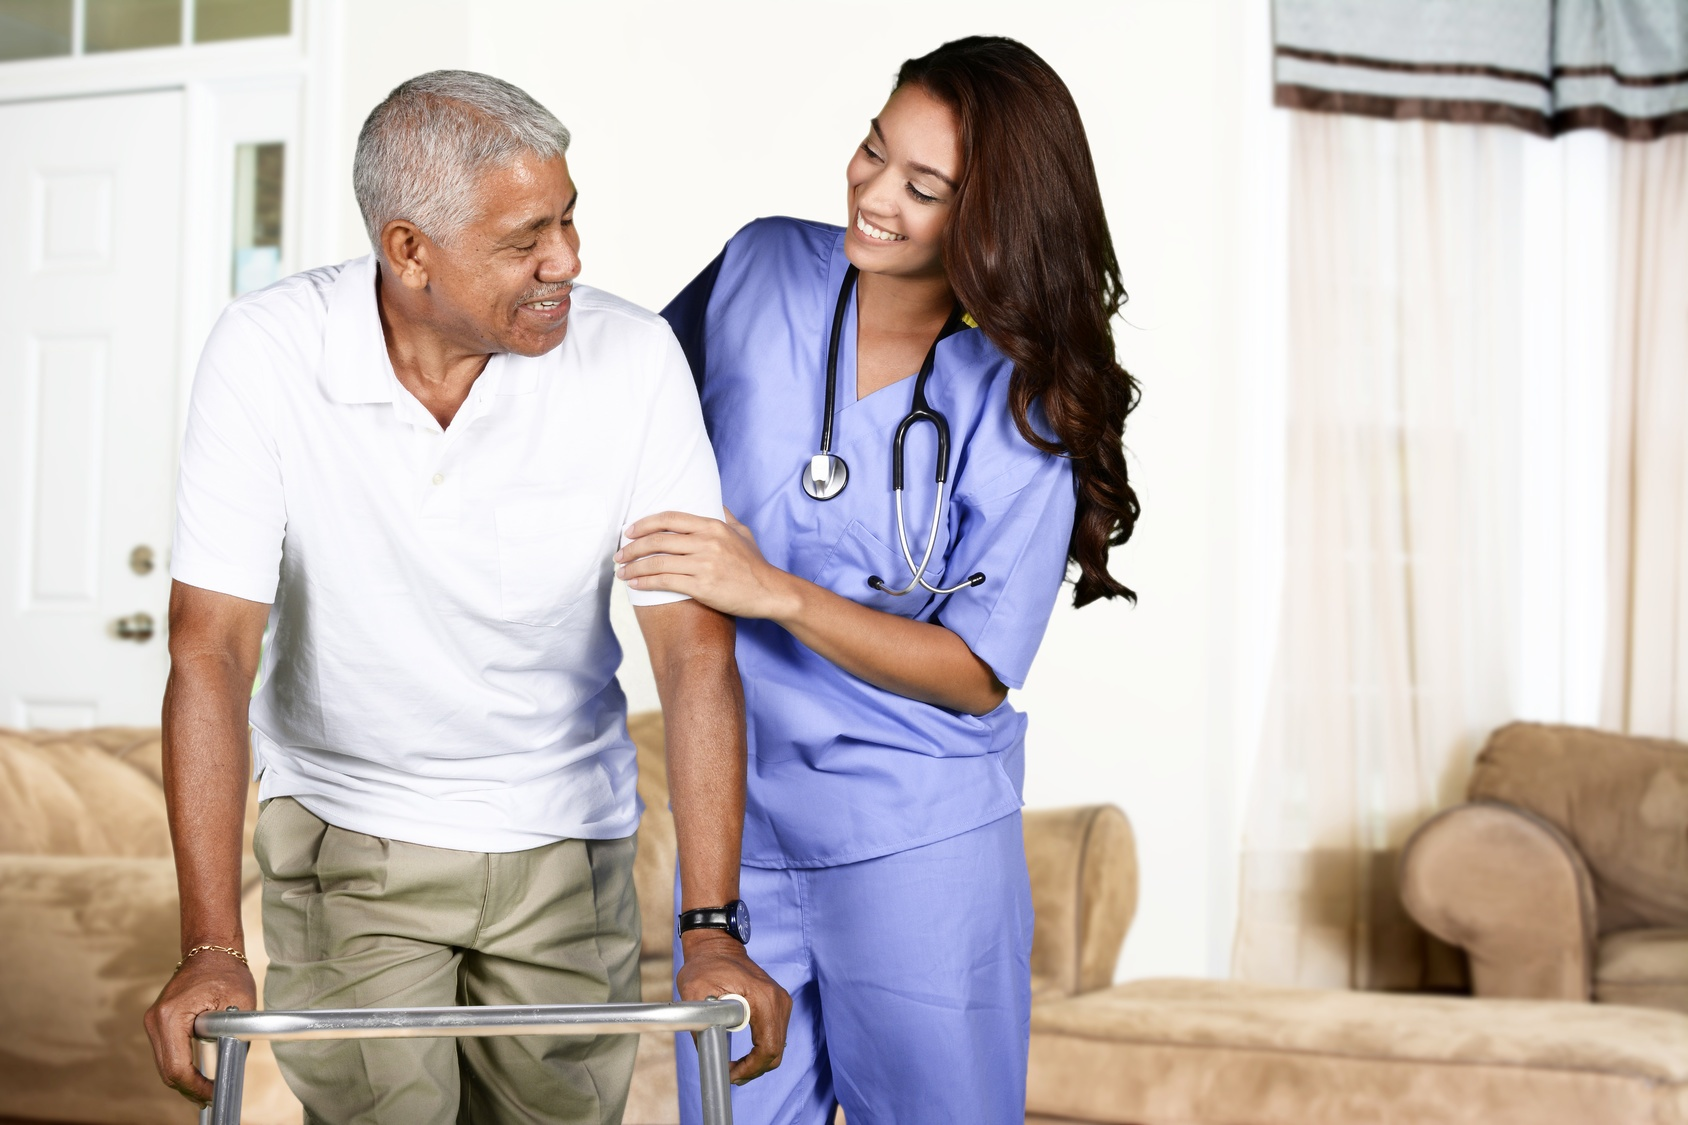 Memory Care vs. Assisted Living: What's the Difference?